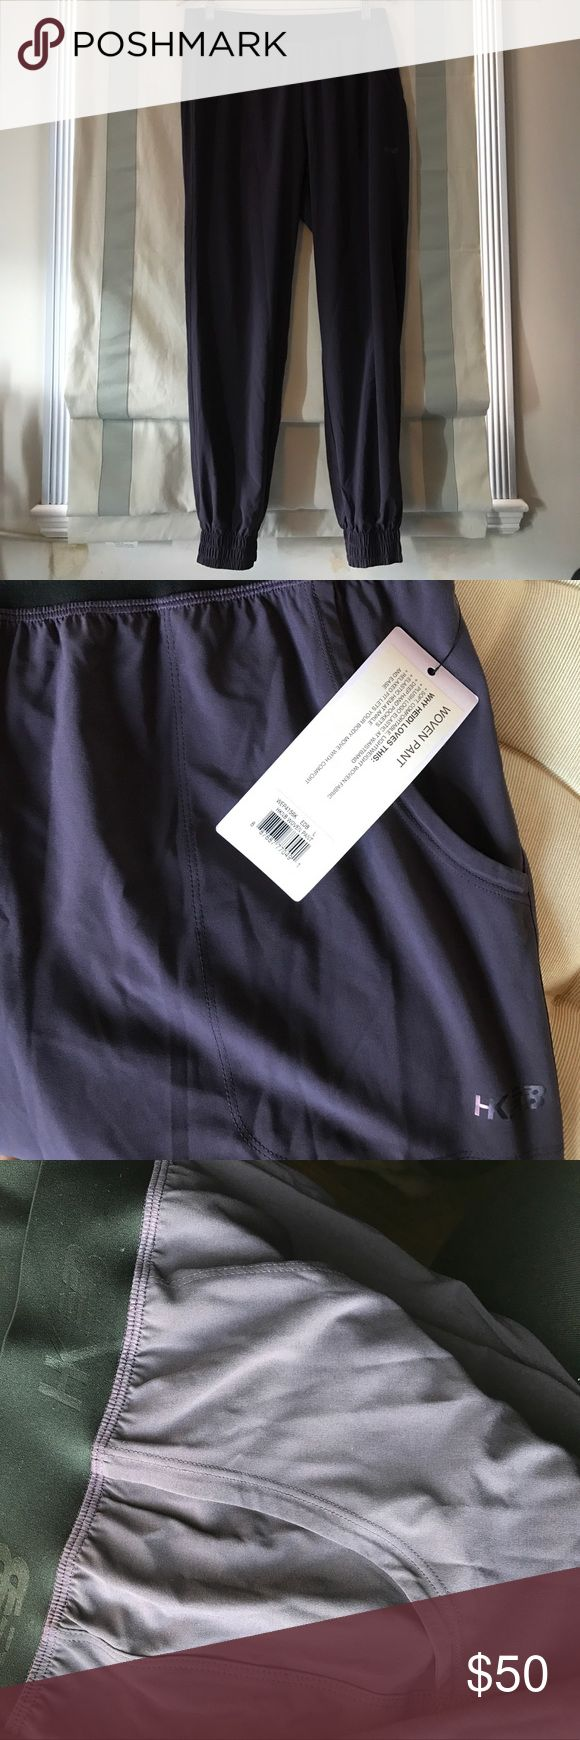 New Balance x Heidi Klum NWT Woven Pants size L. New Balance x Heidi Klum NWT Dark Purple Woven Yoga / City Track Pants. Side pockets and elastic hem, New Balance logo and waistband. NWT and never worn. Very comfortable, allowing movement yet very cute. Size L. New Balance Pants Track Pants & Joggers